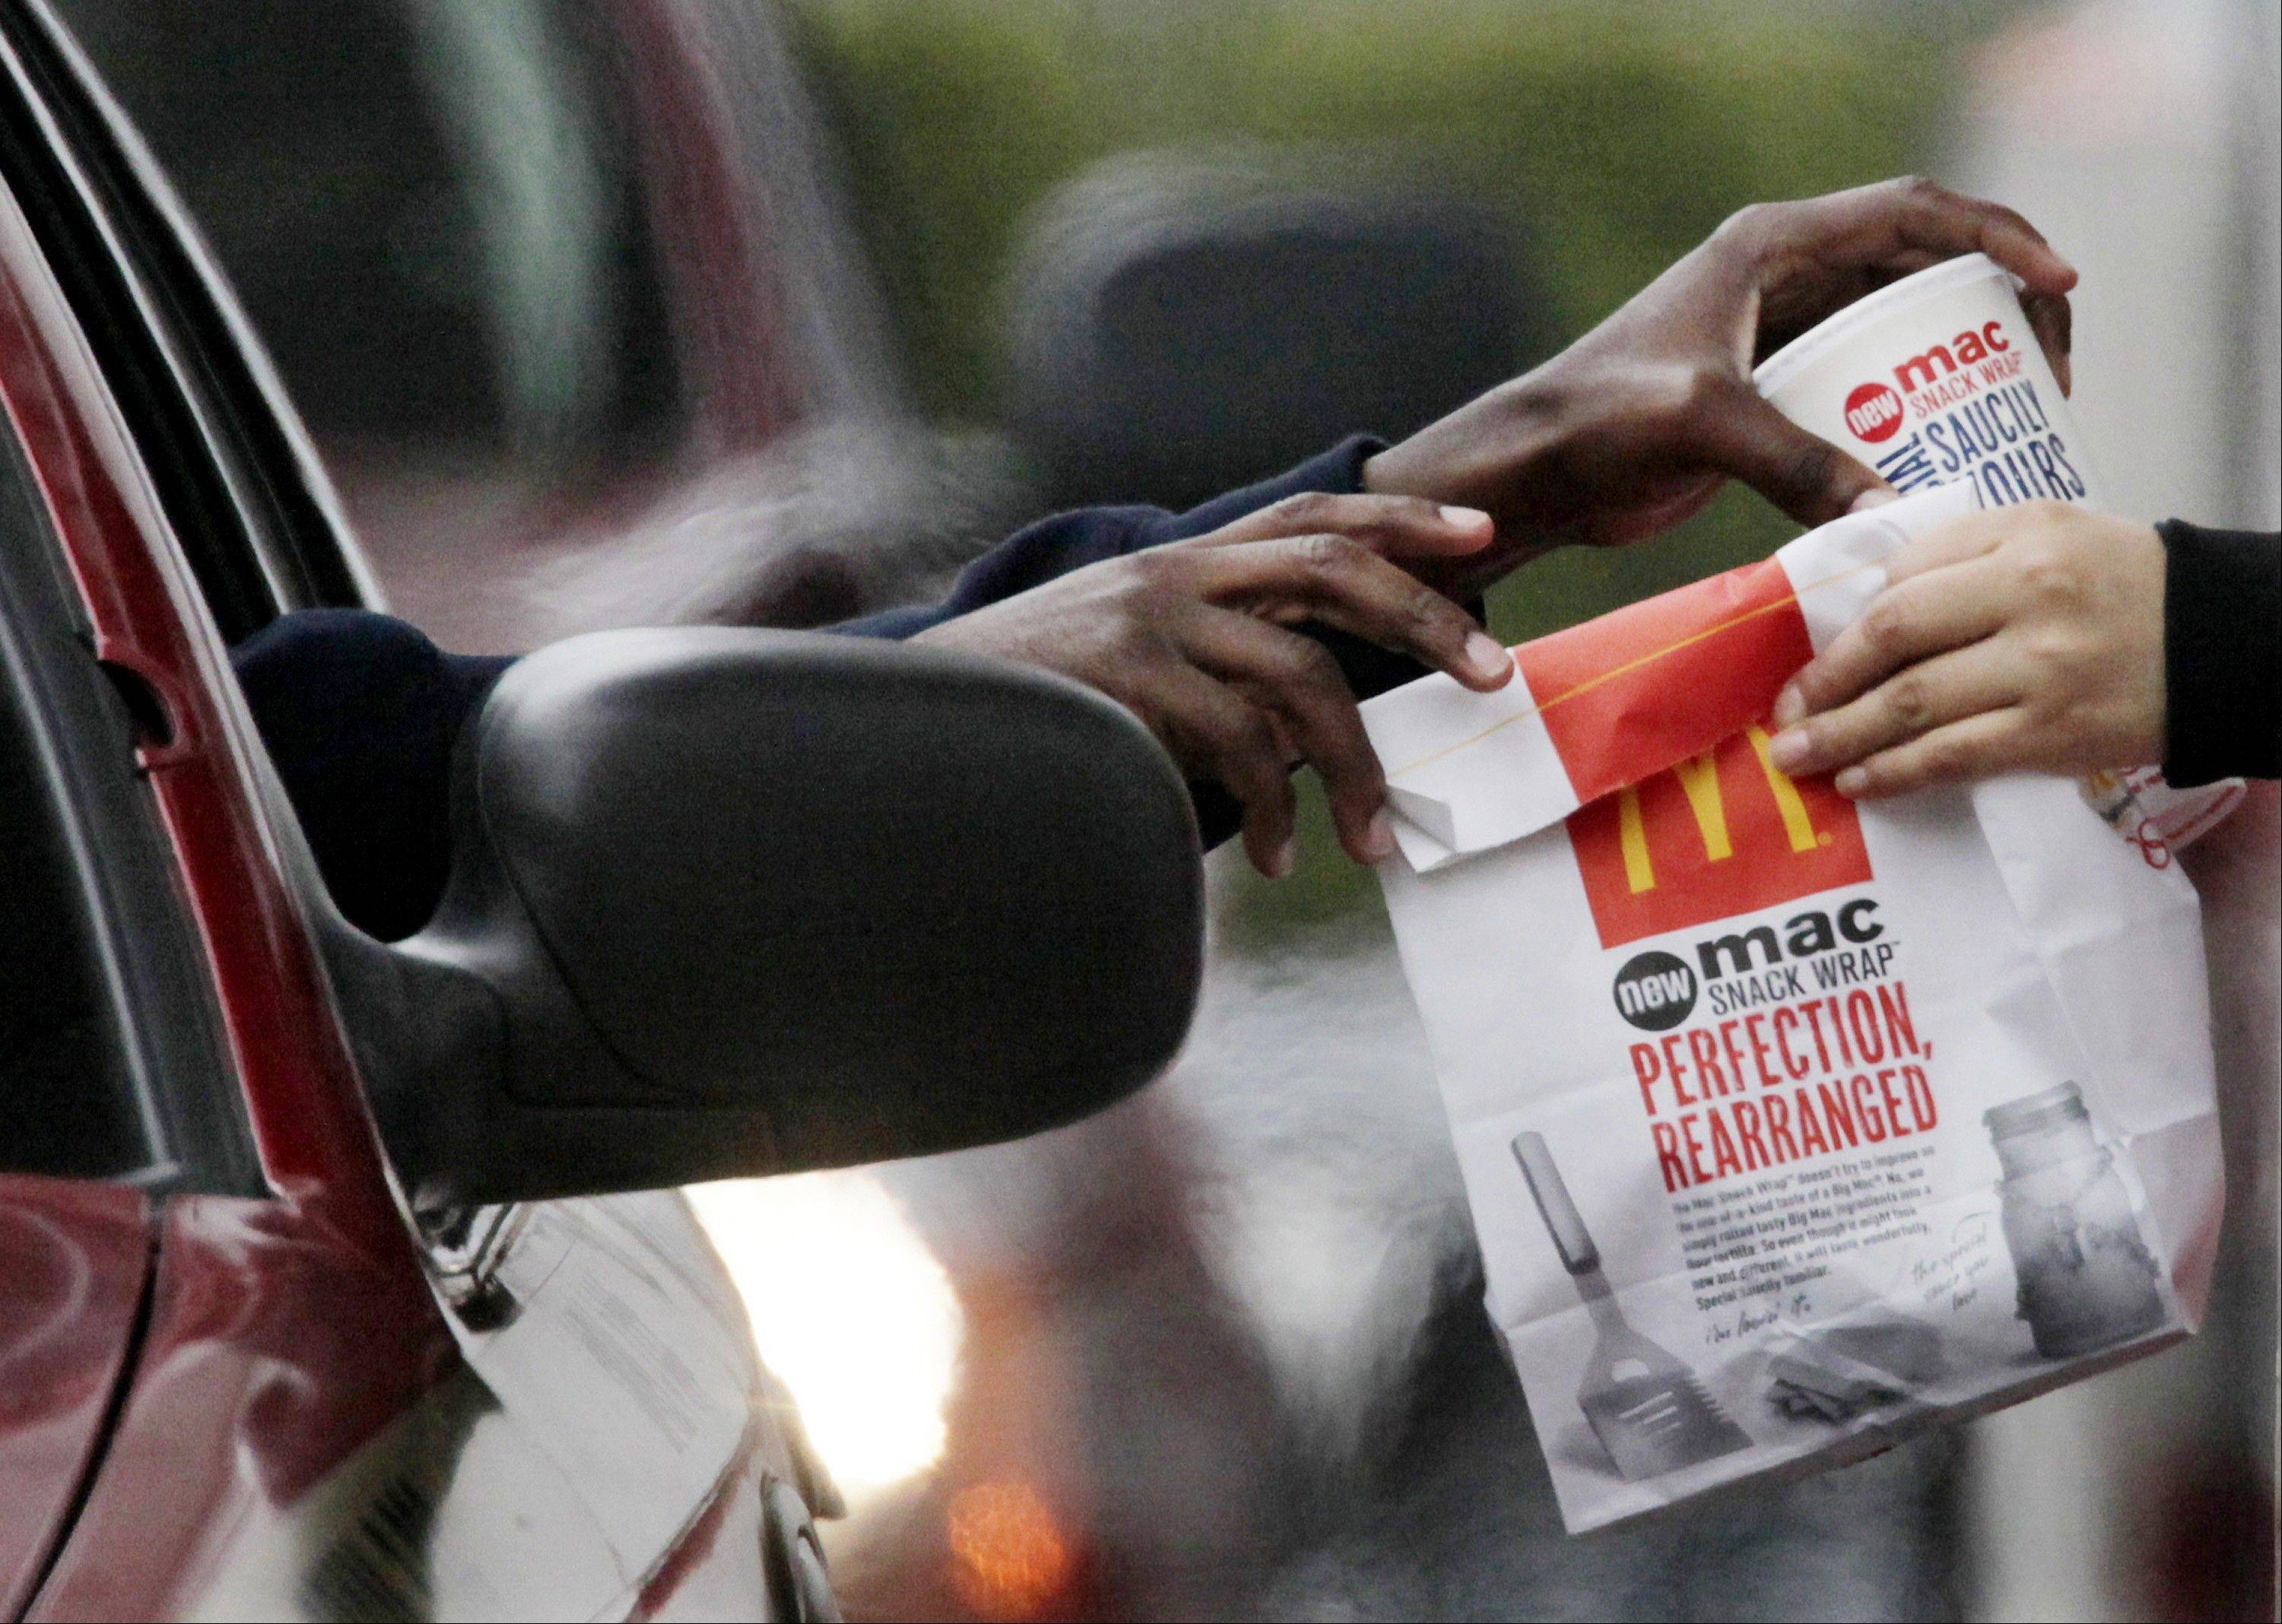 In this Jan. 22, 2010 file photo, a customer grabs lunch at a McDonald's drive-through in Chicago. Fast-food chains such as McDonald's, Burger King and Wendy's are trumpeting pricier, premium offerings to shed their image as purveyors of greasy junk food and convince customers to spend a few extra bucks.